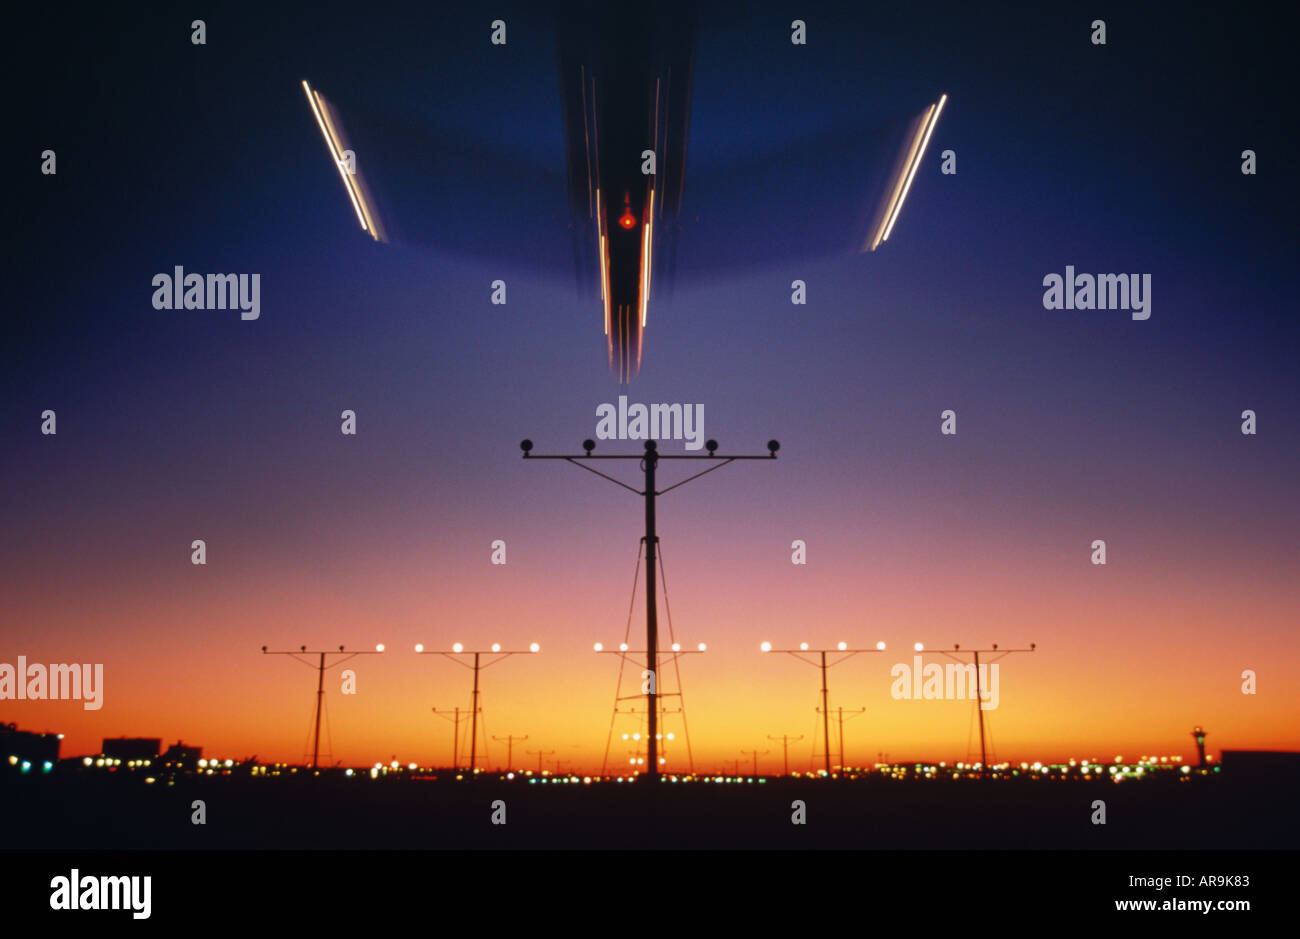 airliner landing over runway approach lights at night dusk sunset sunrise - Stock Image